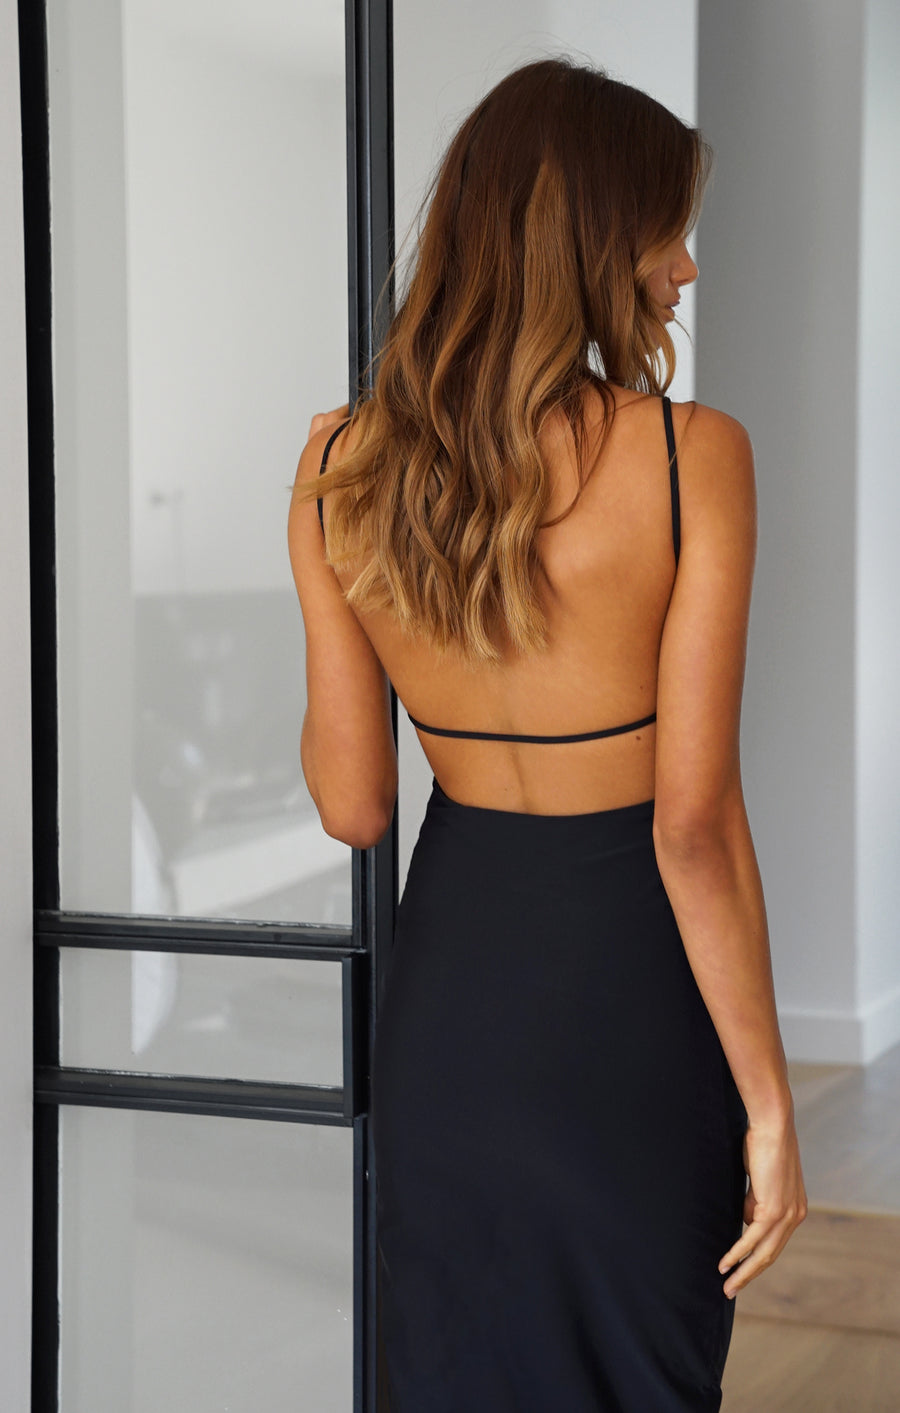 THE DOUBLE STRAP DRESS